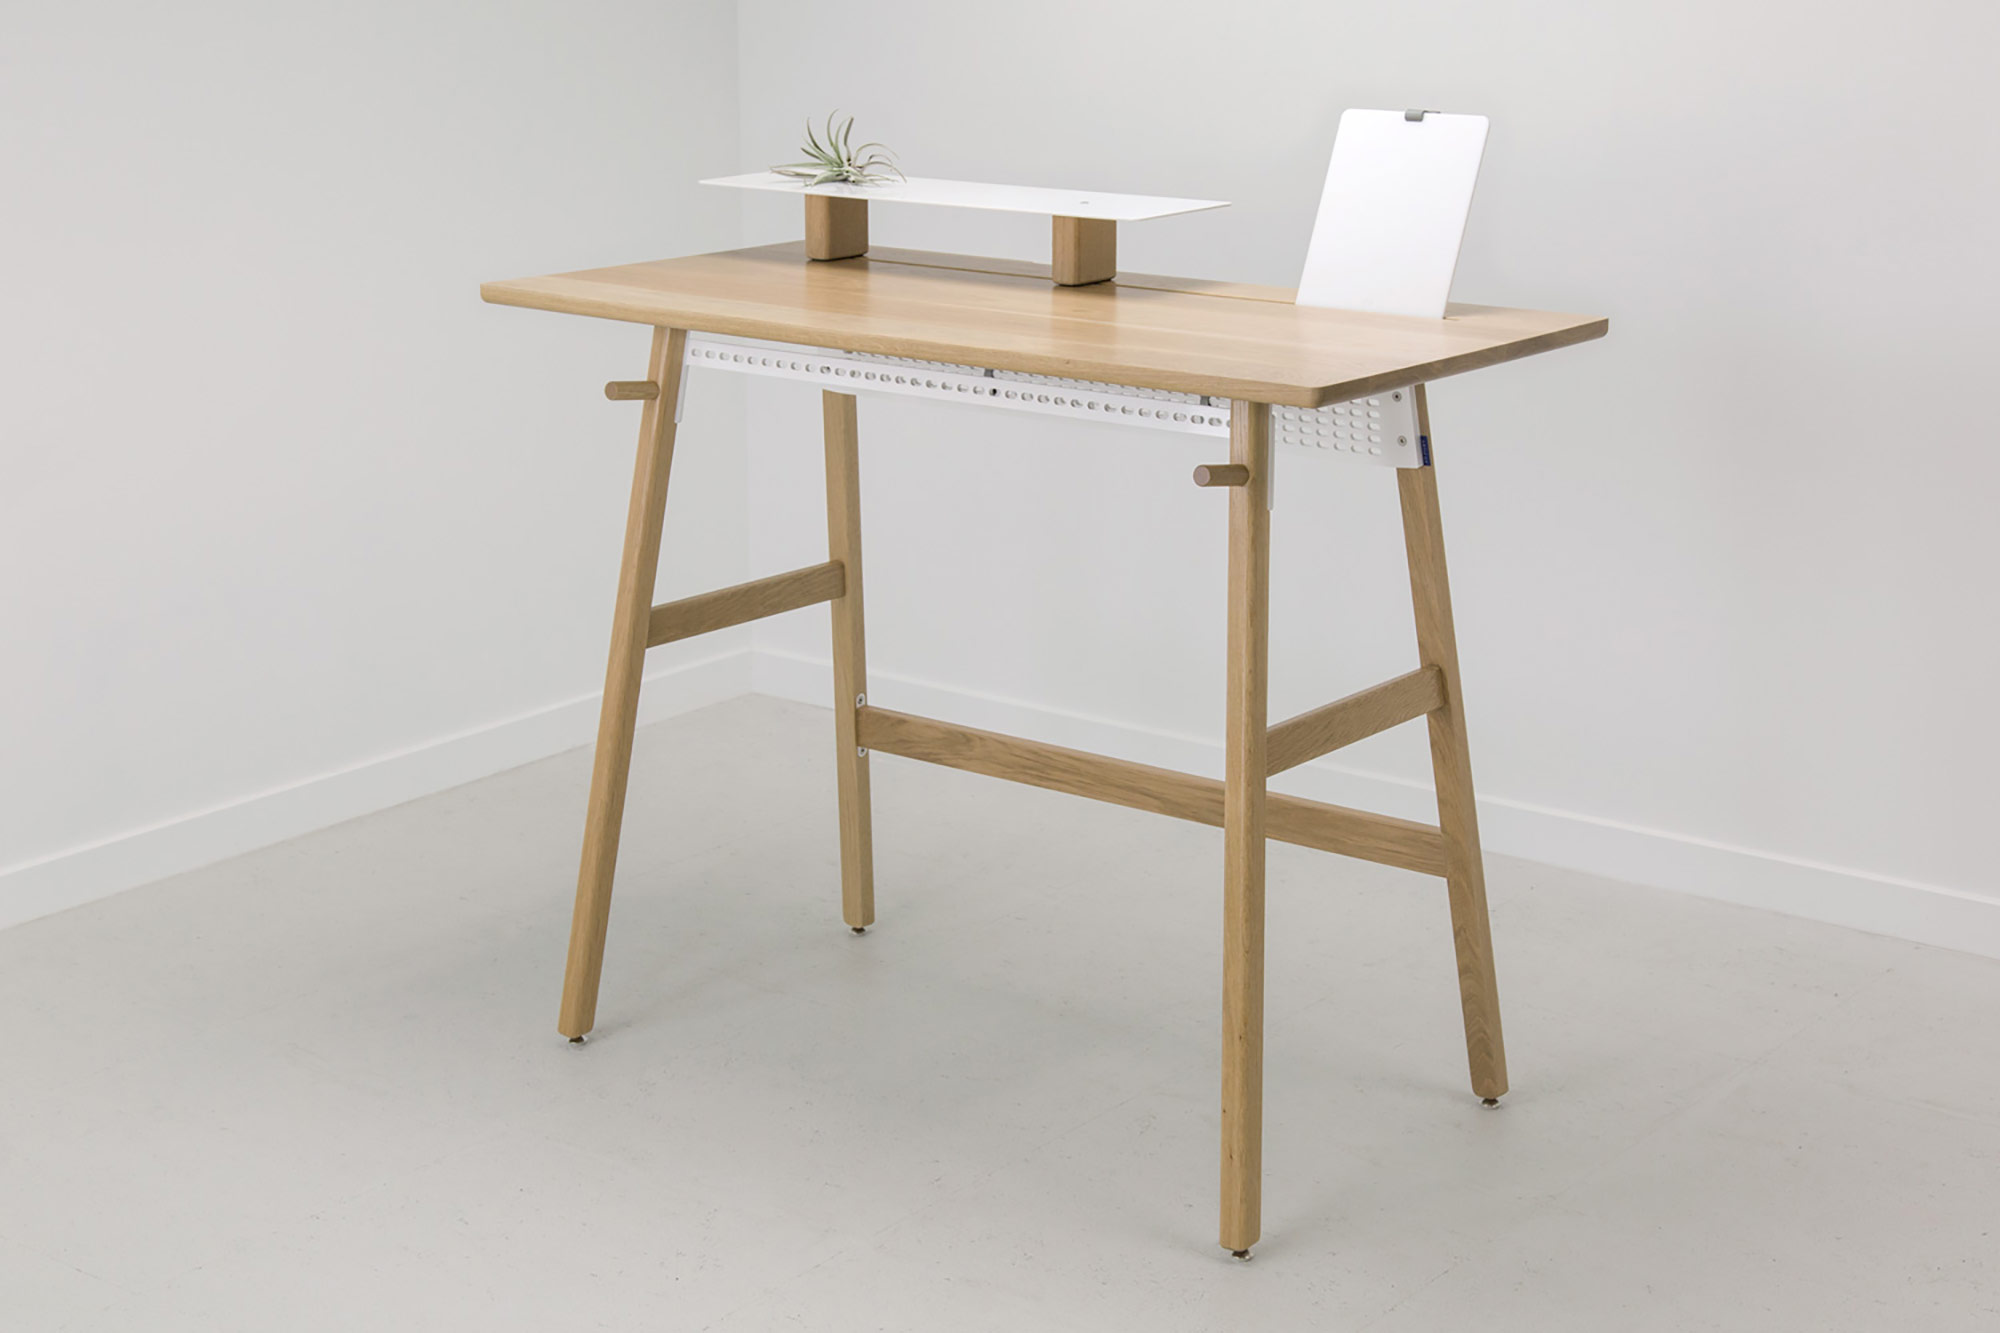 Modern standing desk designs and extensions for homes and for Minimalist desk